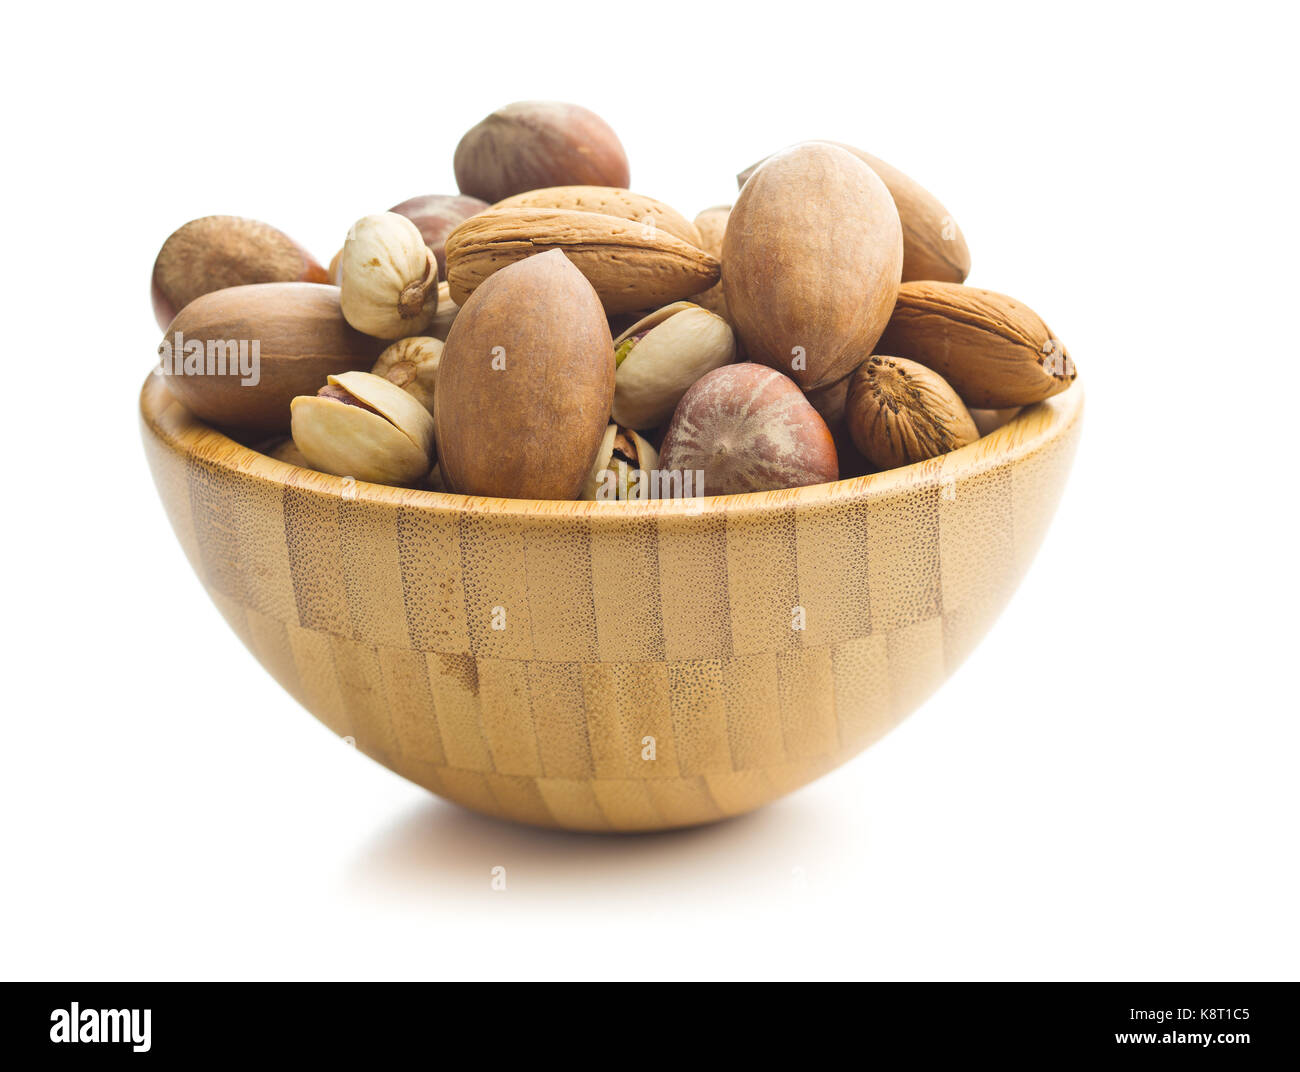 Different types of nuts in the nutshell. Hazelnuts, walnuts, almonds, pecan nuts and pistachio nuts in wooden bowl. - Stock Image